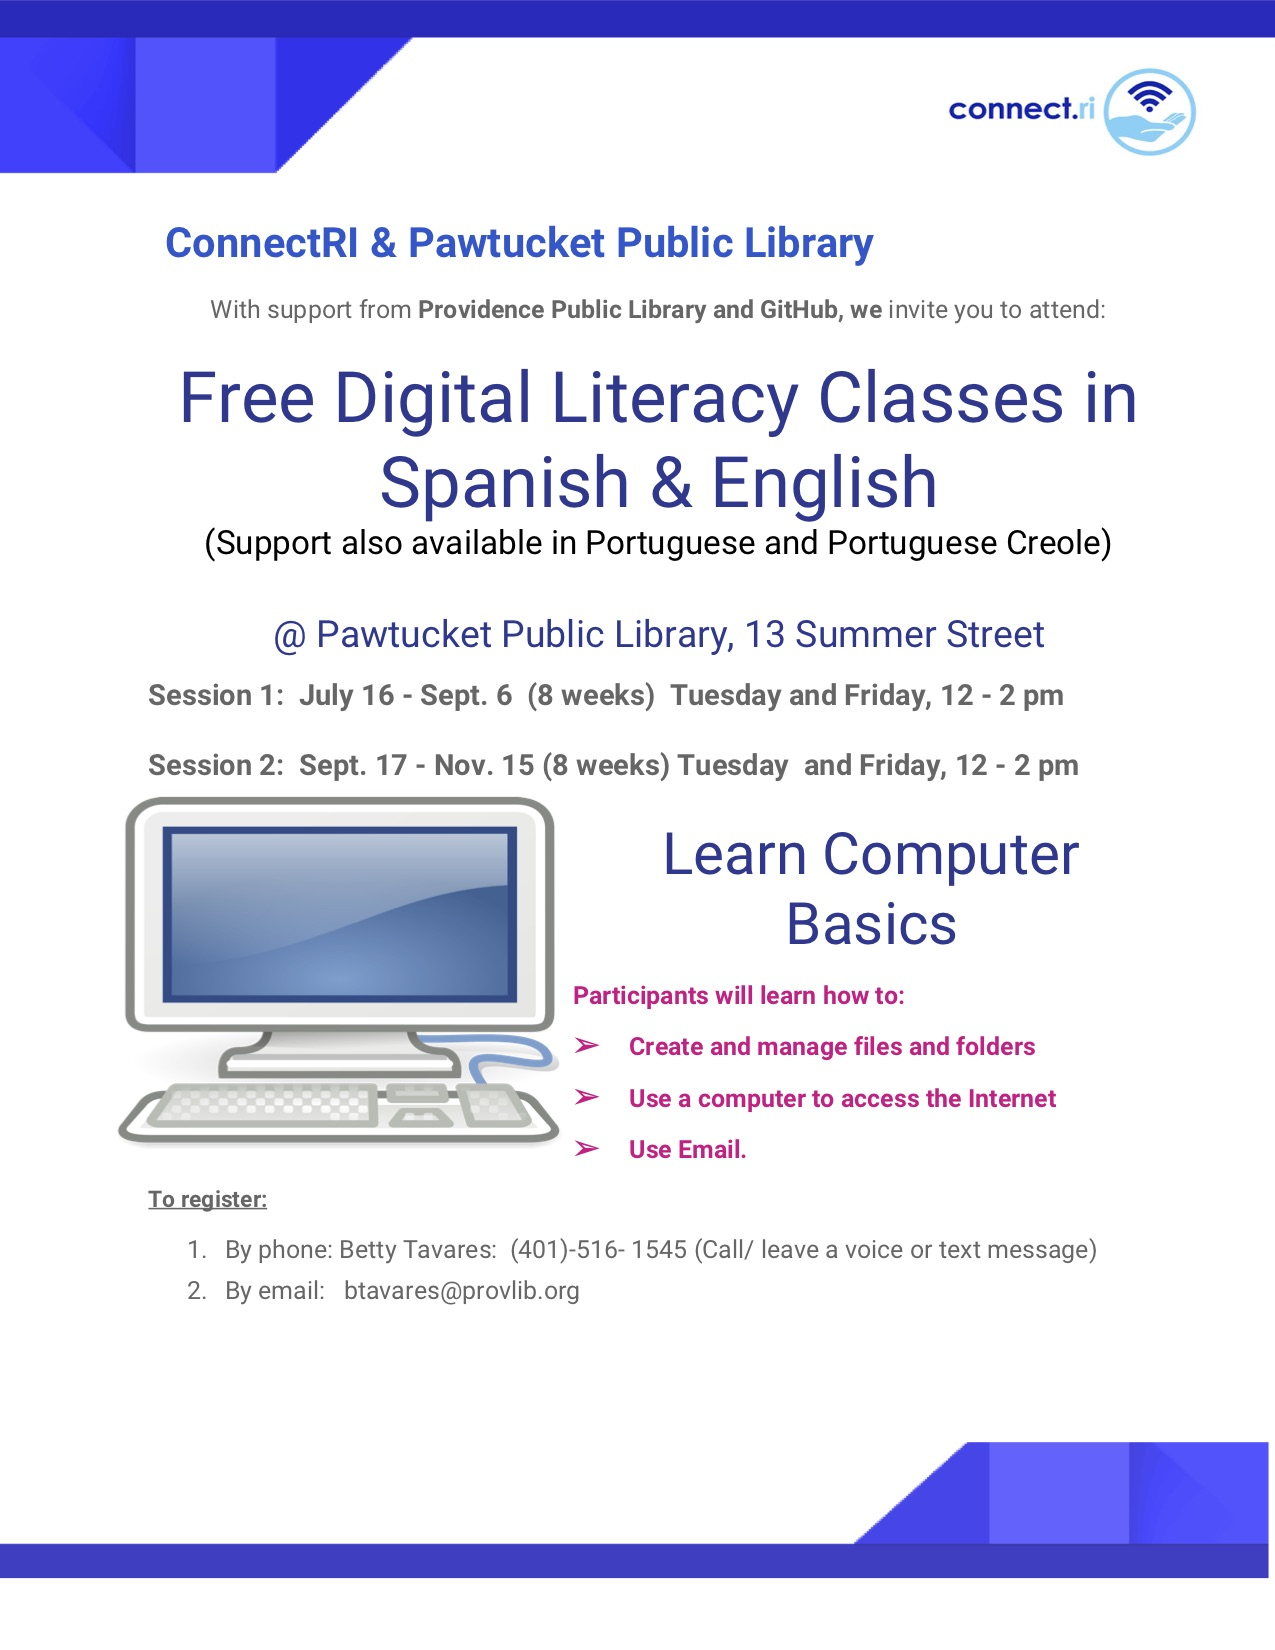 Bilingual Digital Literacy Classes being held this summer at Pawtucket Library! -